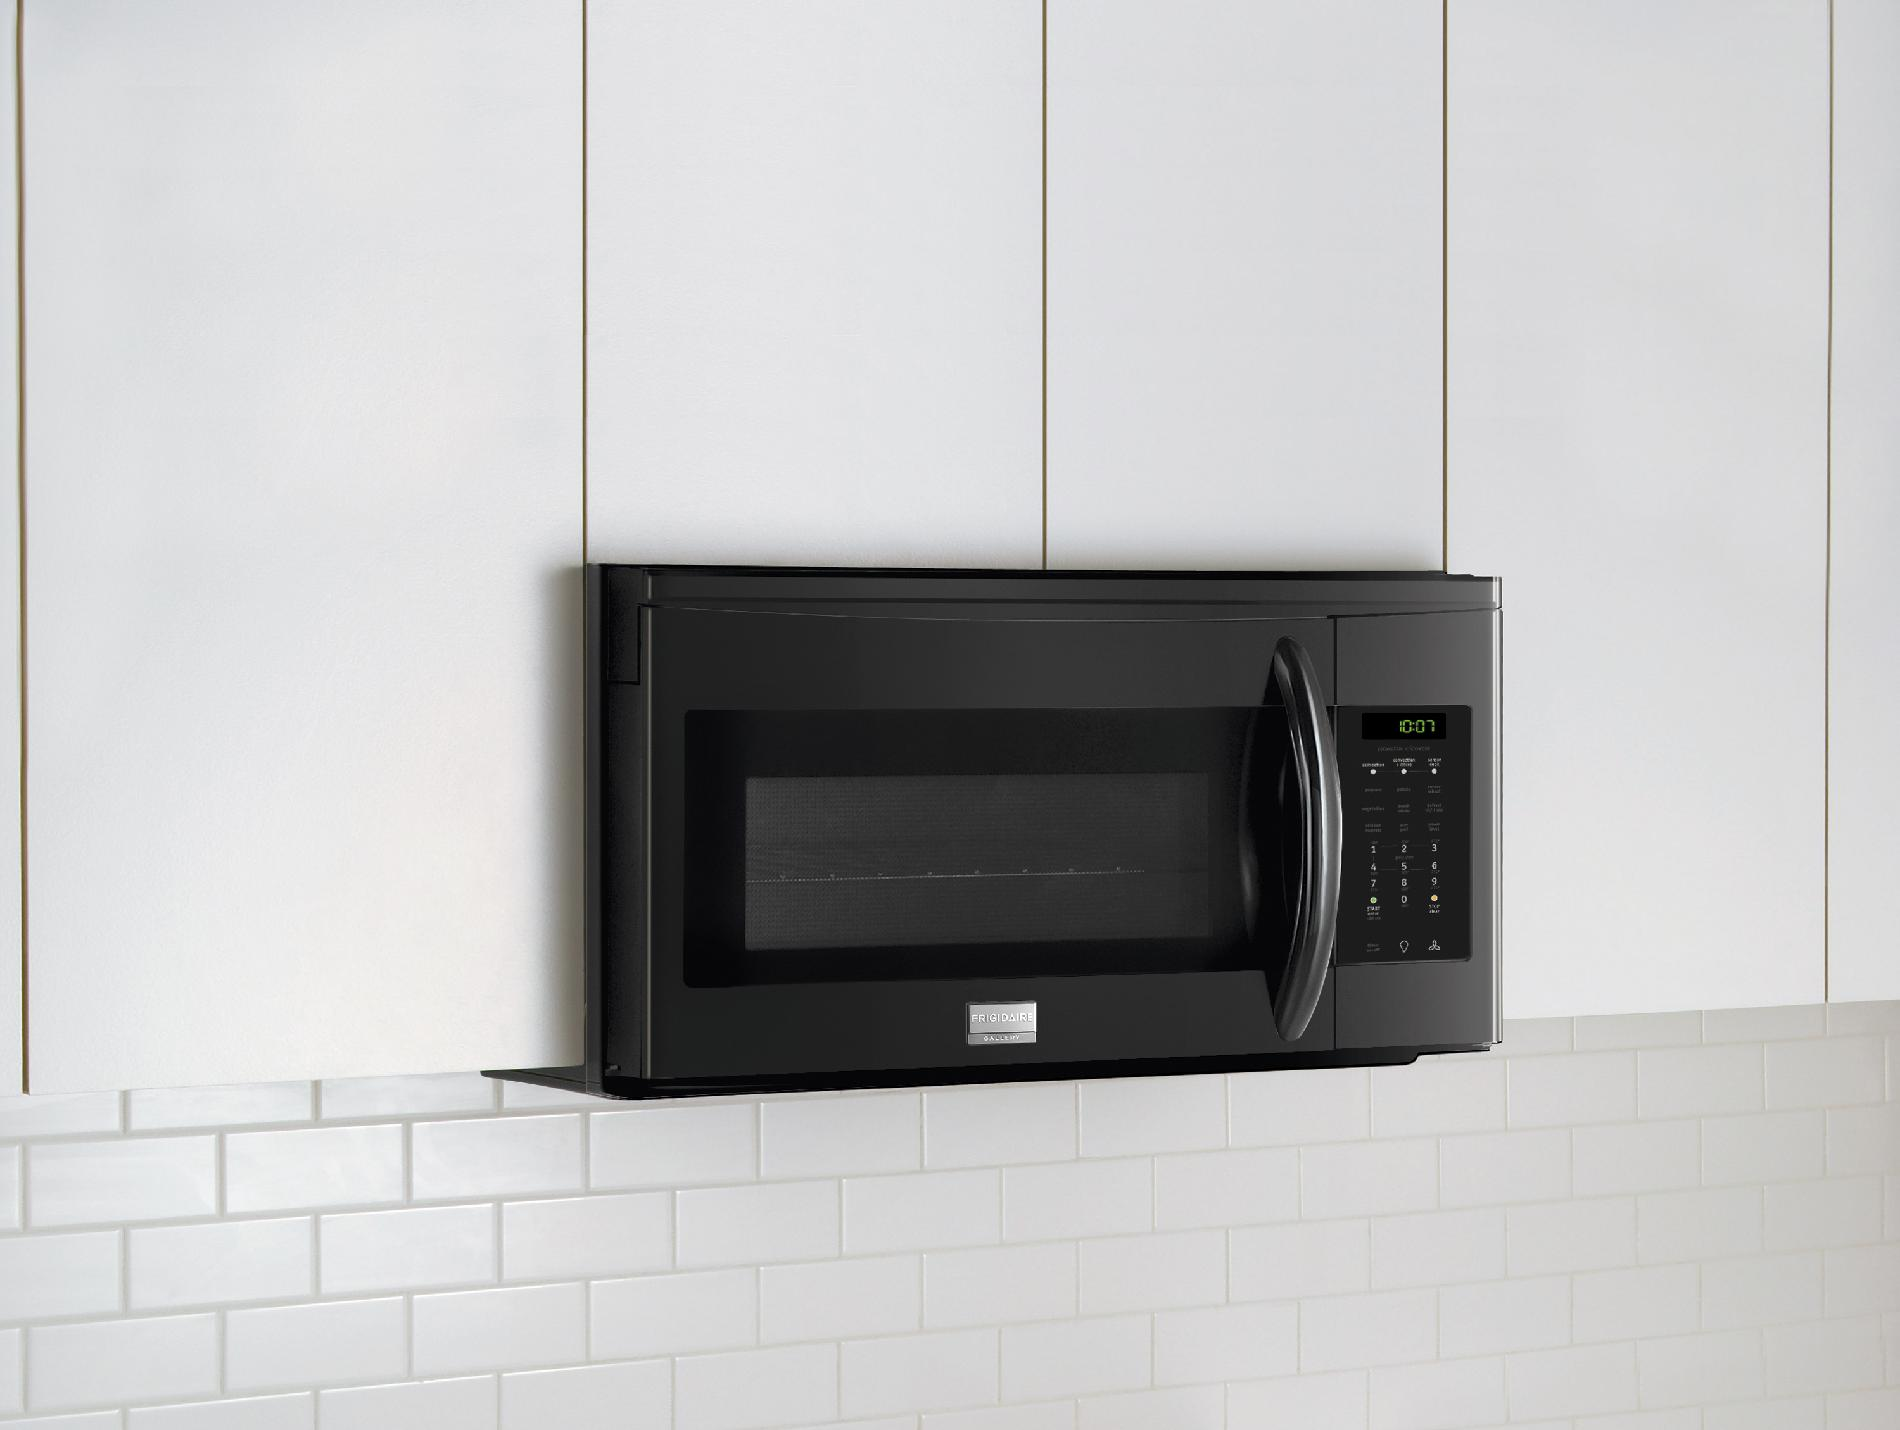 Frigidaire FGMV153CLB Gallery 1.5 cu. ft. Over-the-Range Microwave w/ Convection - Black